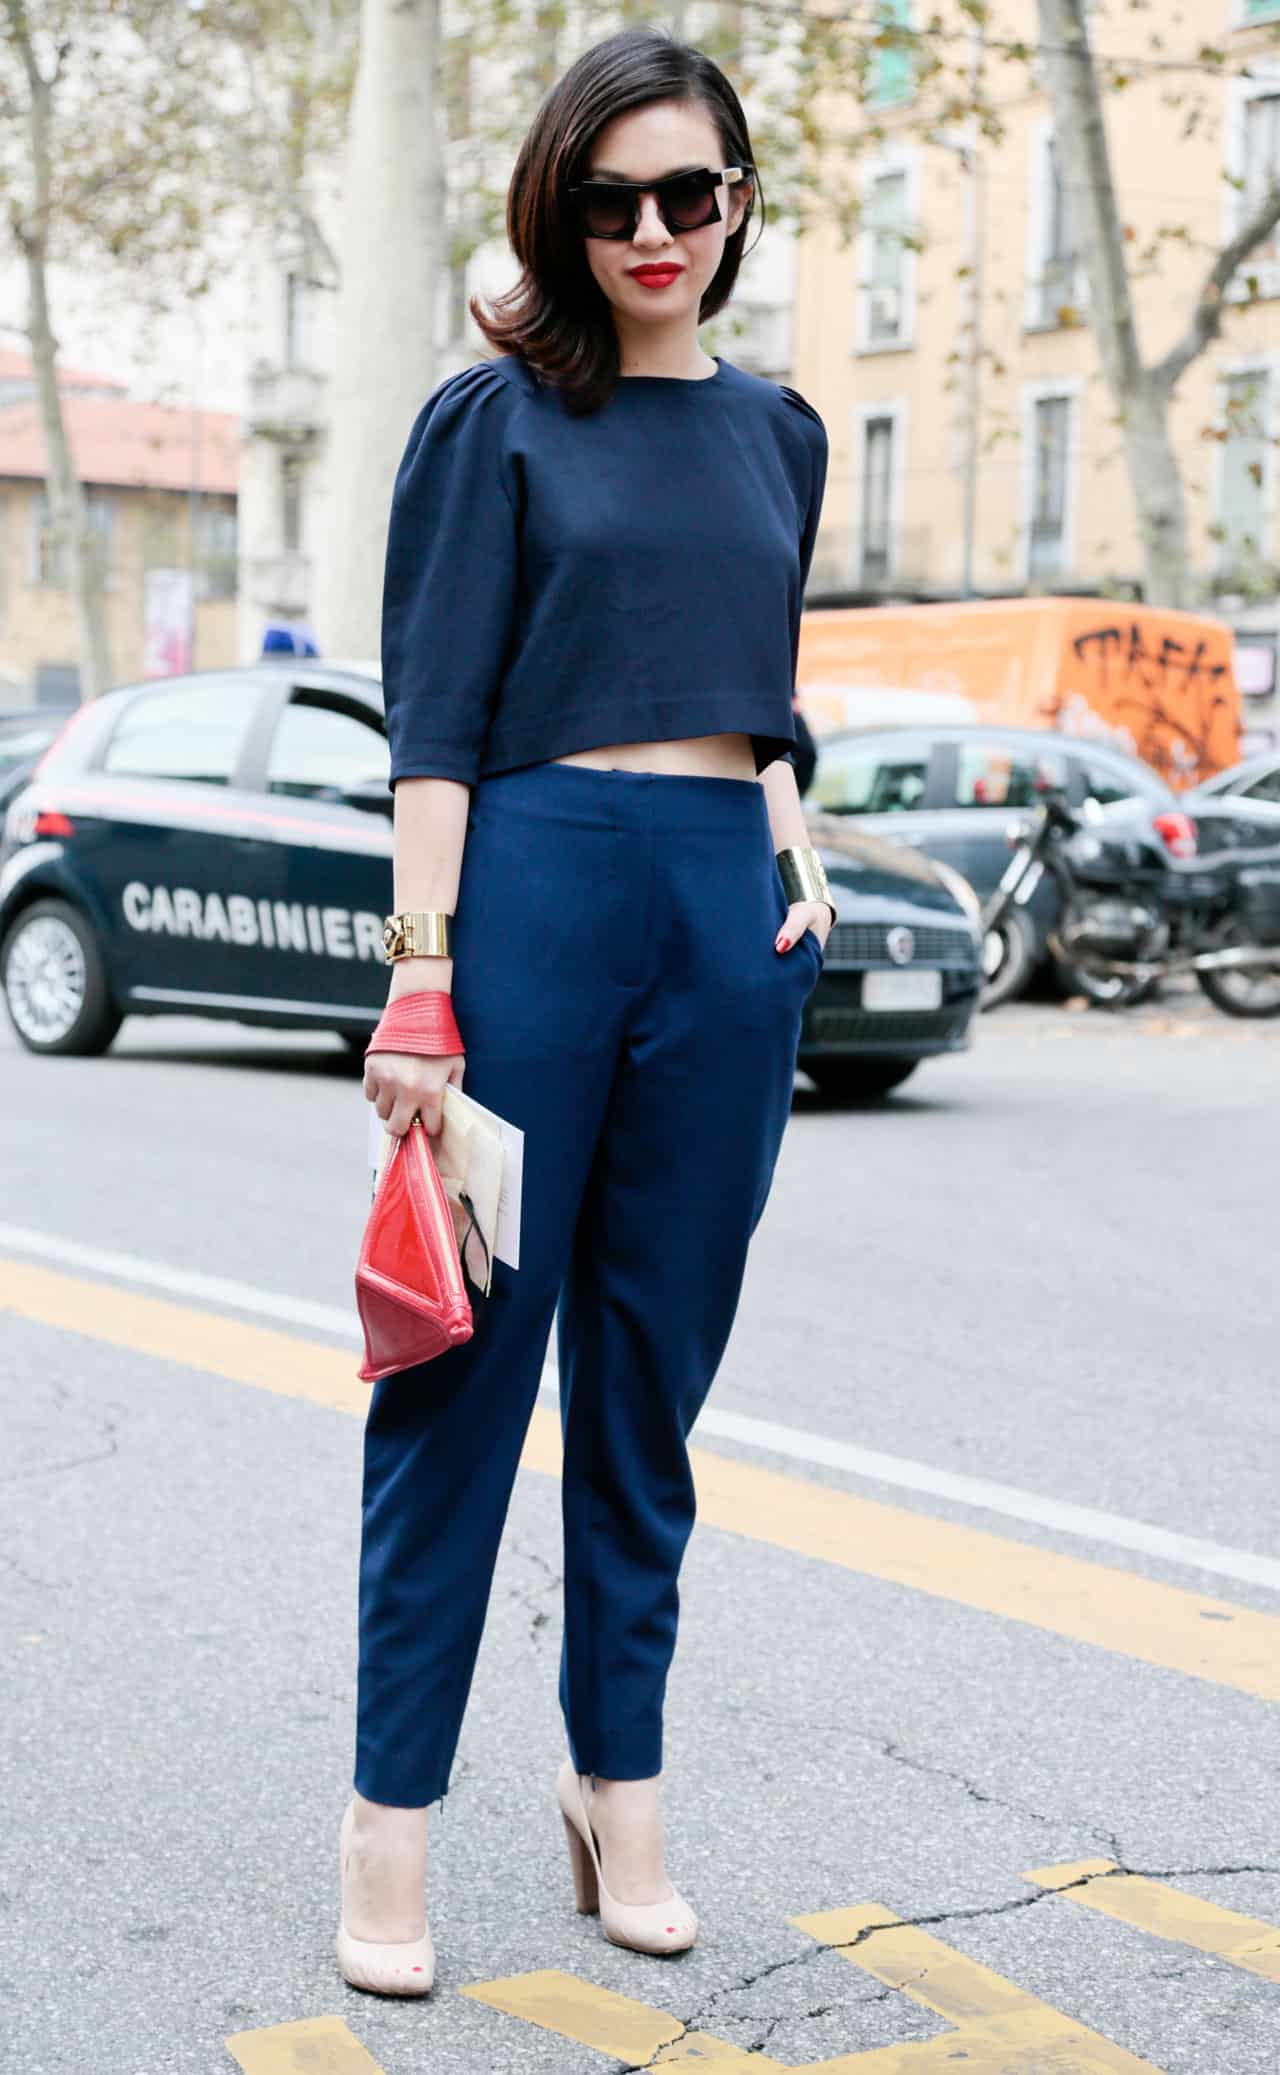 Crop Tops The Scariest Trend The Fashion Tag Blog